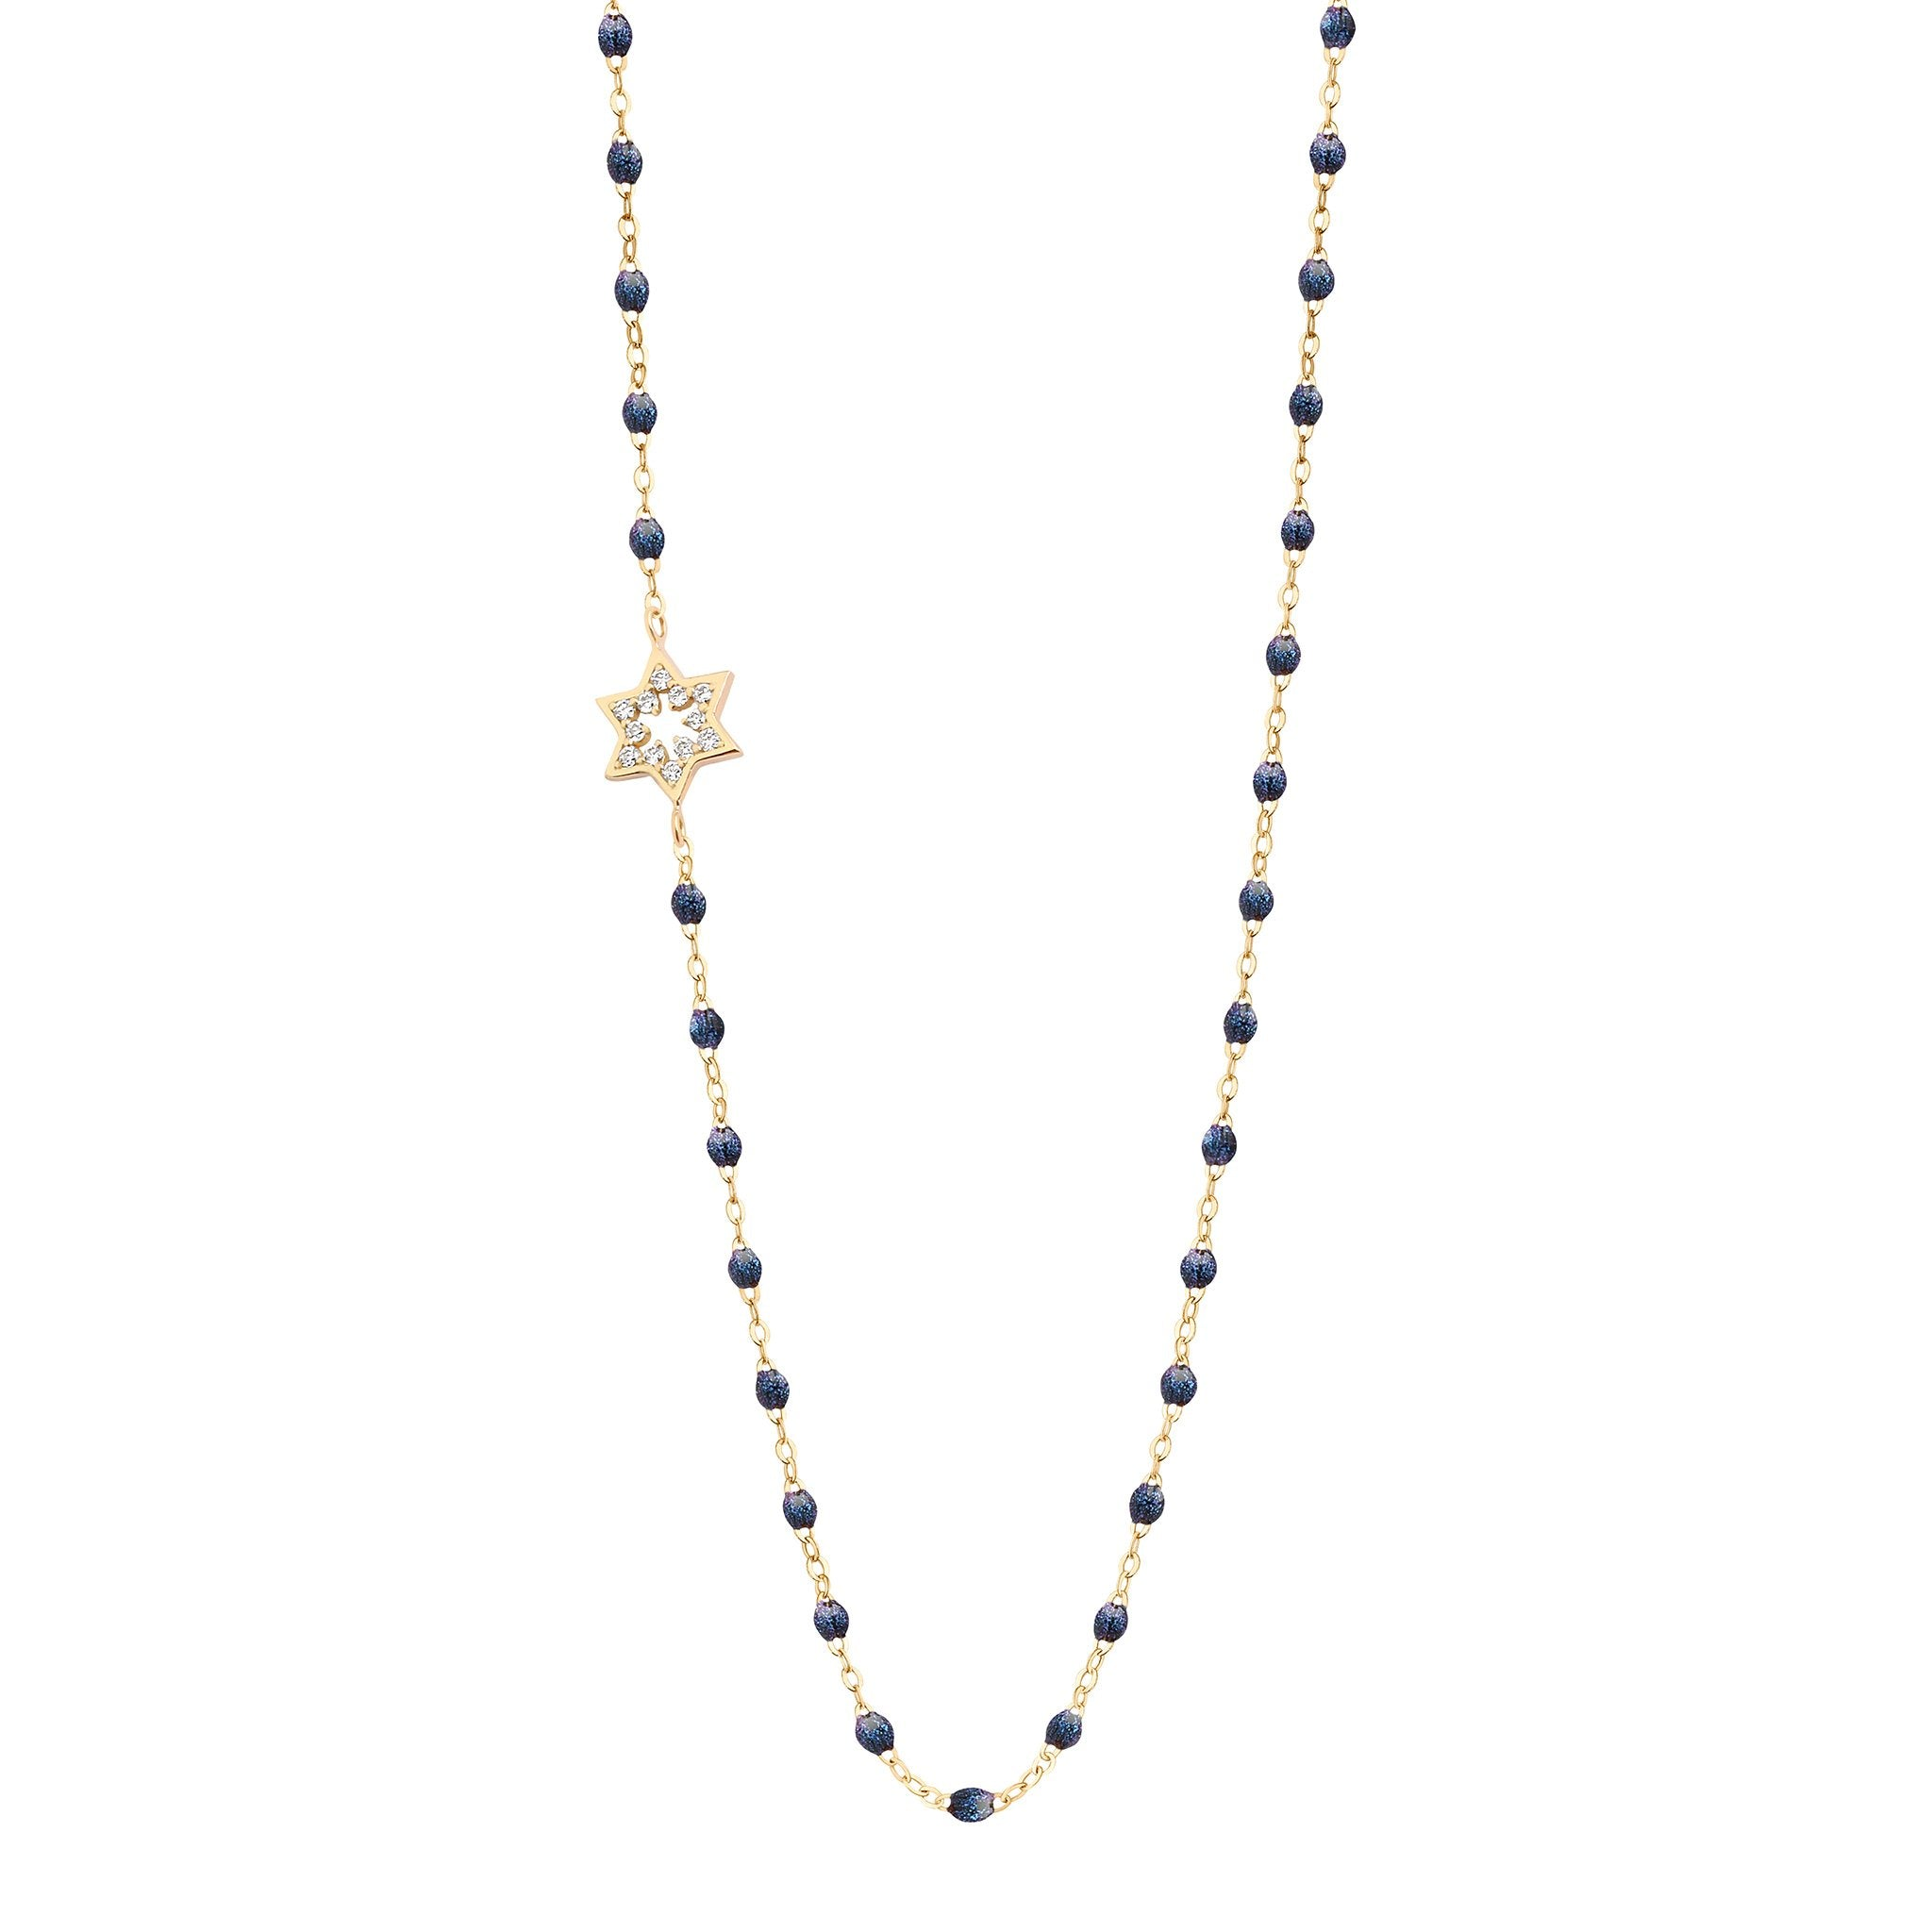 Gigi Clozeau - Star of David Classic Gigi Midnight diamond necklace, Yellow Gold, 16.5""